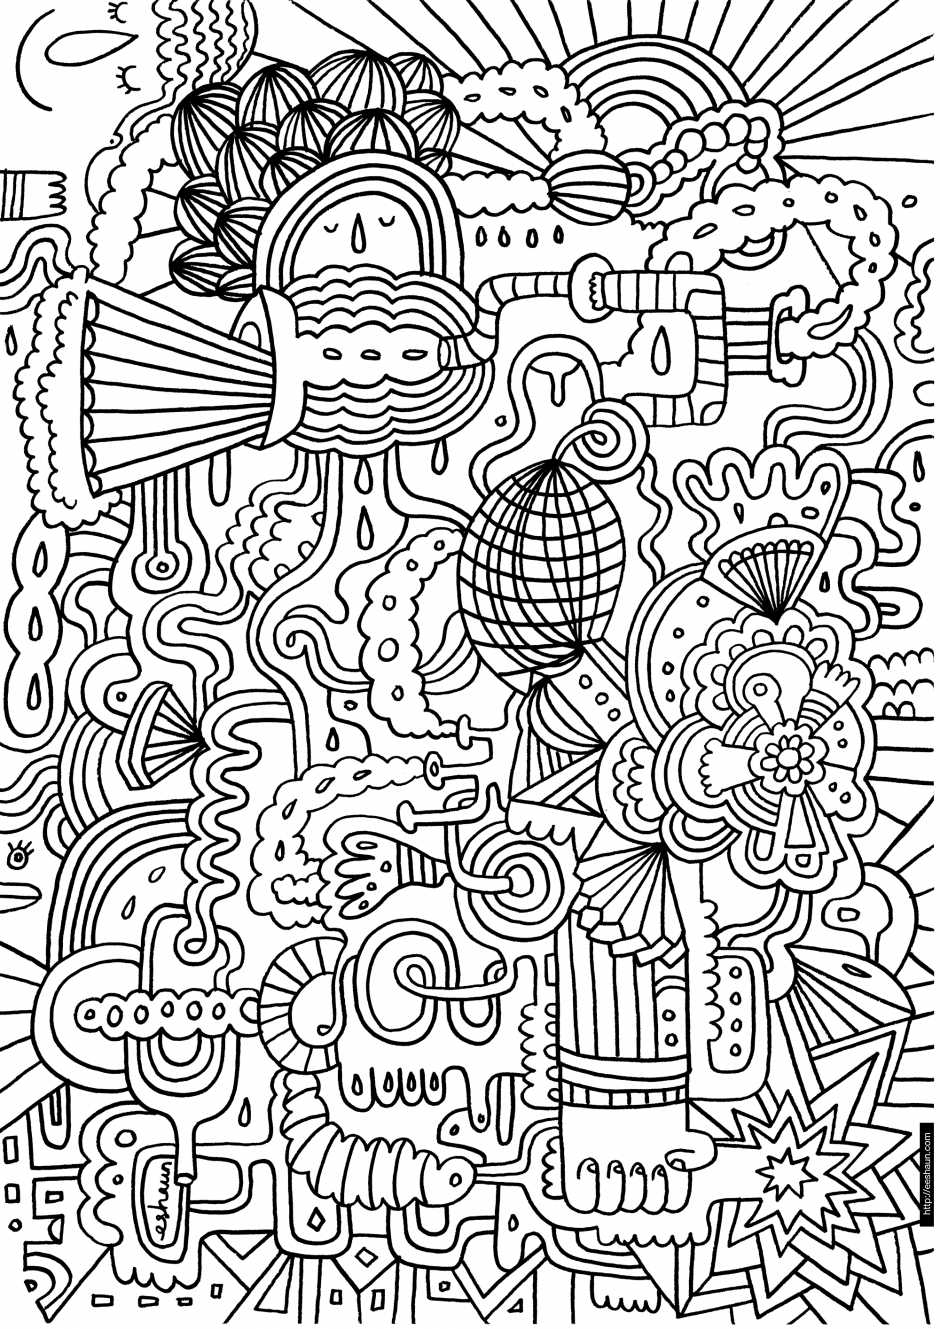 challenging coloring pages printable difficult coloring pages coloring home pages challenging coloring